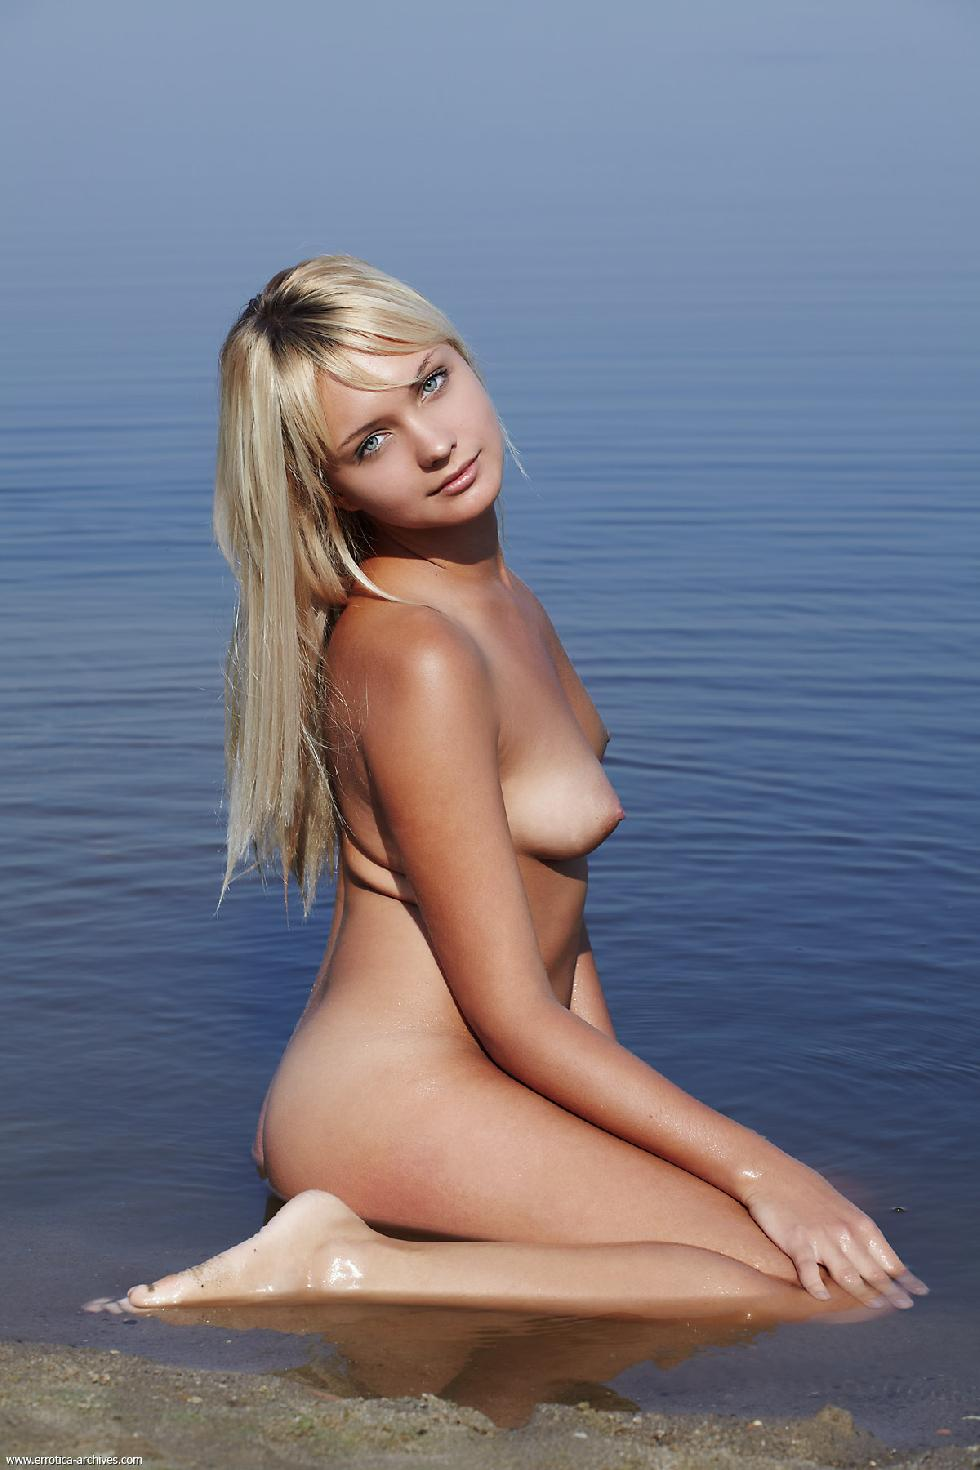 Young blonde is posing in the lake - Lada - 9